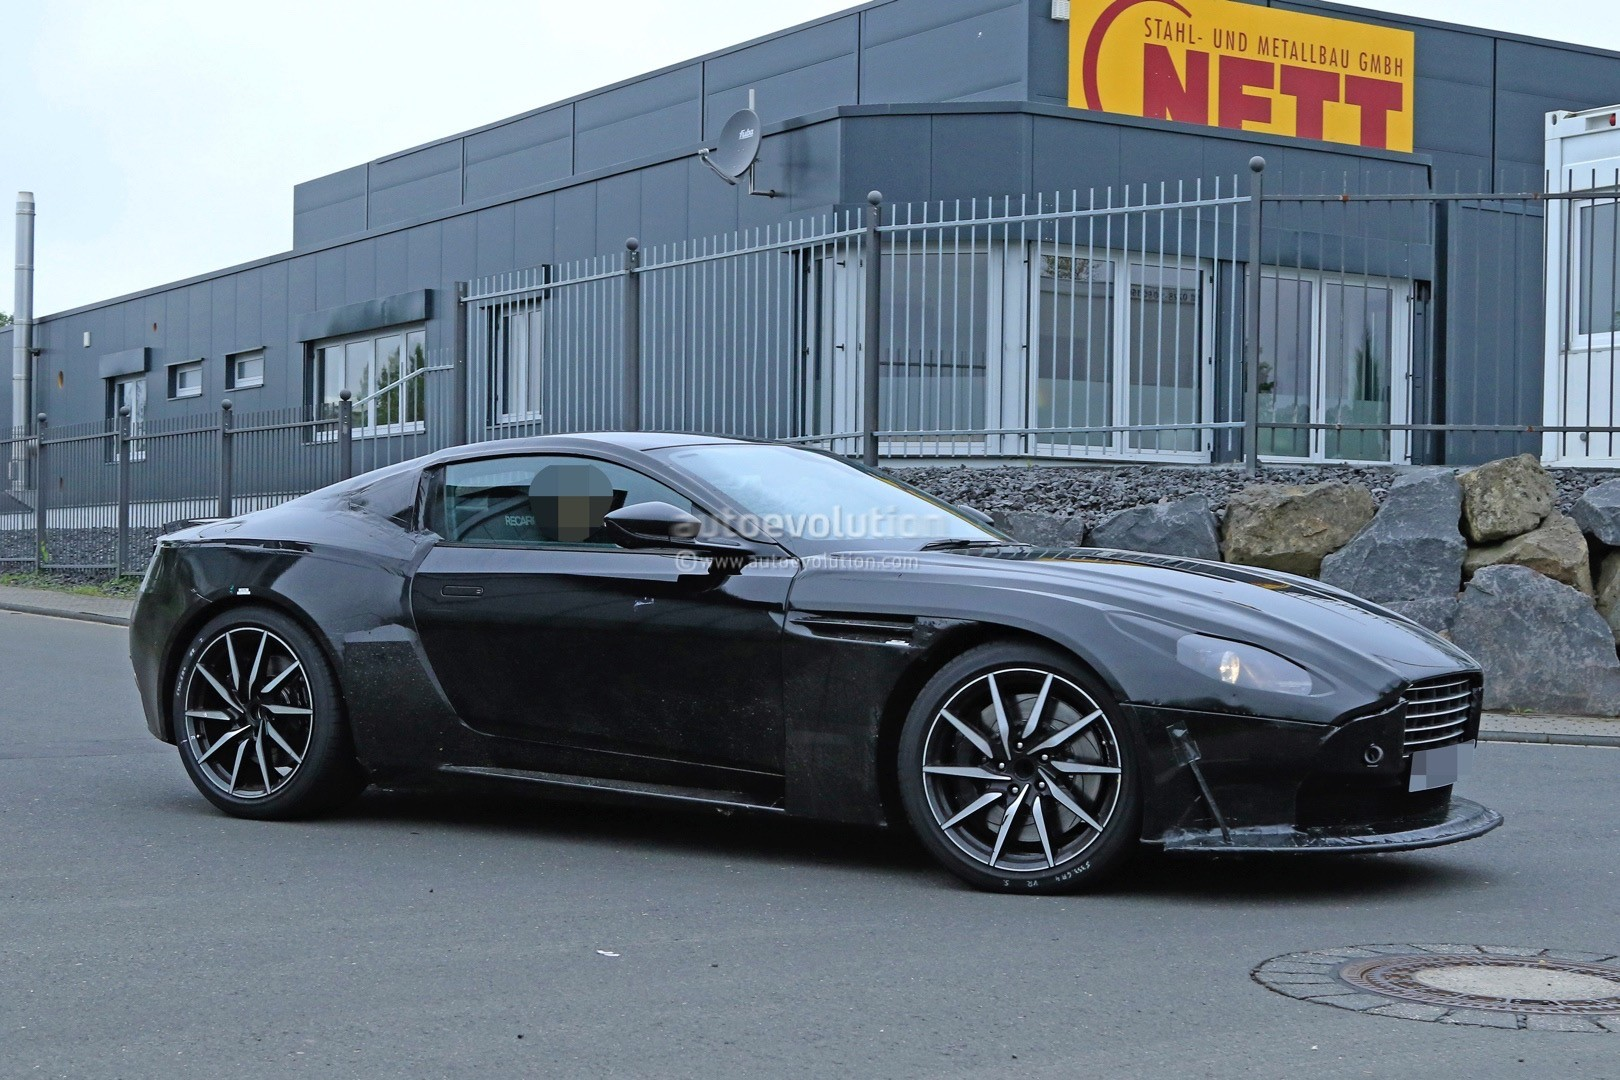 Vantage Promises To Be The BestHandling Aston Martin To Date - 2018 aston martin